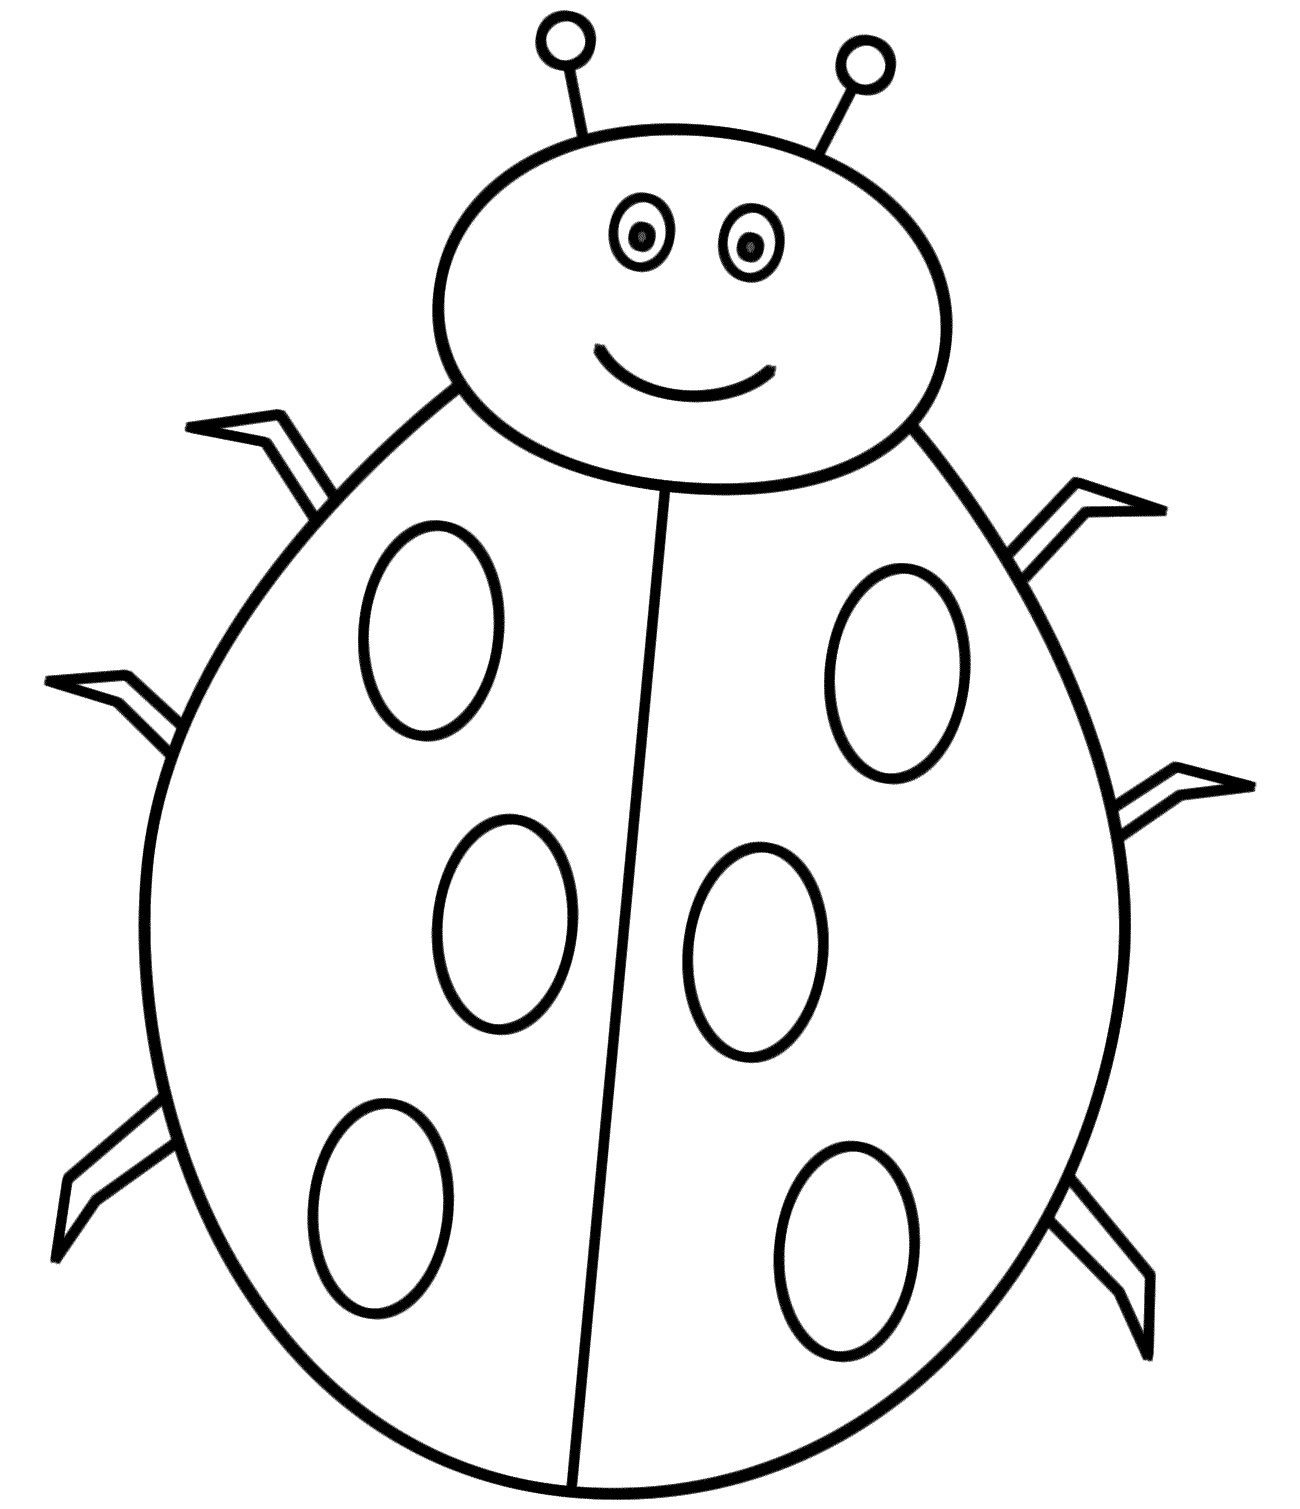 l is for ladybug letter l coloring pages for kids my babies abc and 123 l is ladybug for